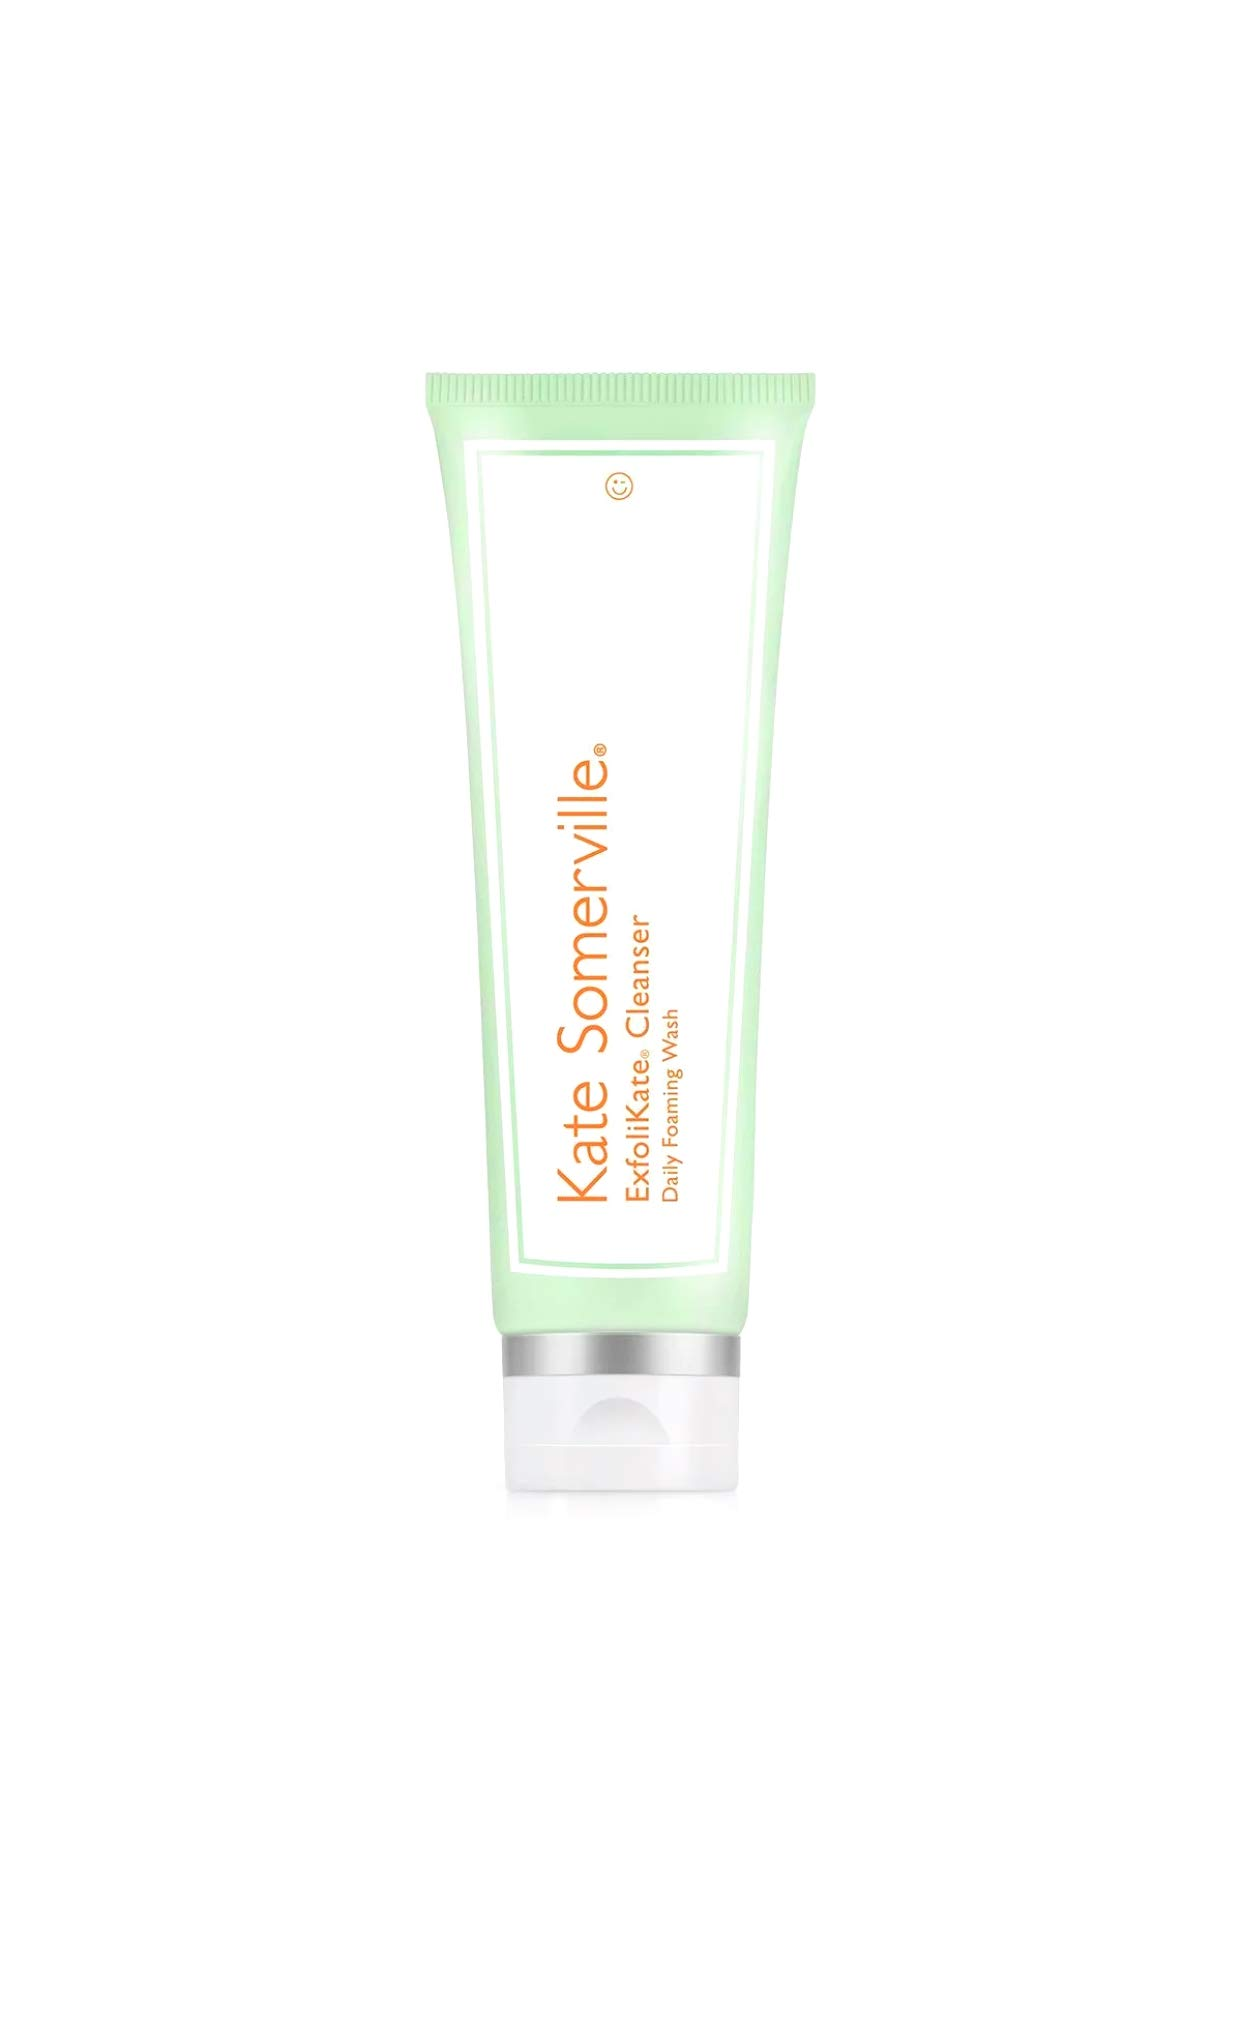 Kate Somerville ExfoliKate Cleanser Daily Foaming Wash, Travel Size 1oz